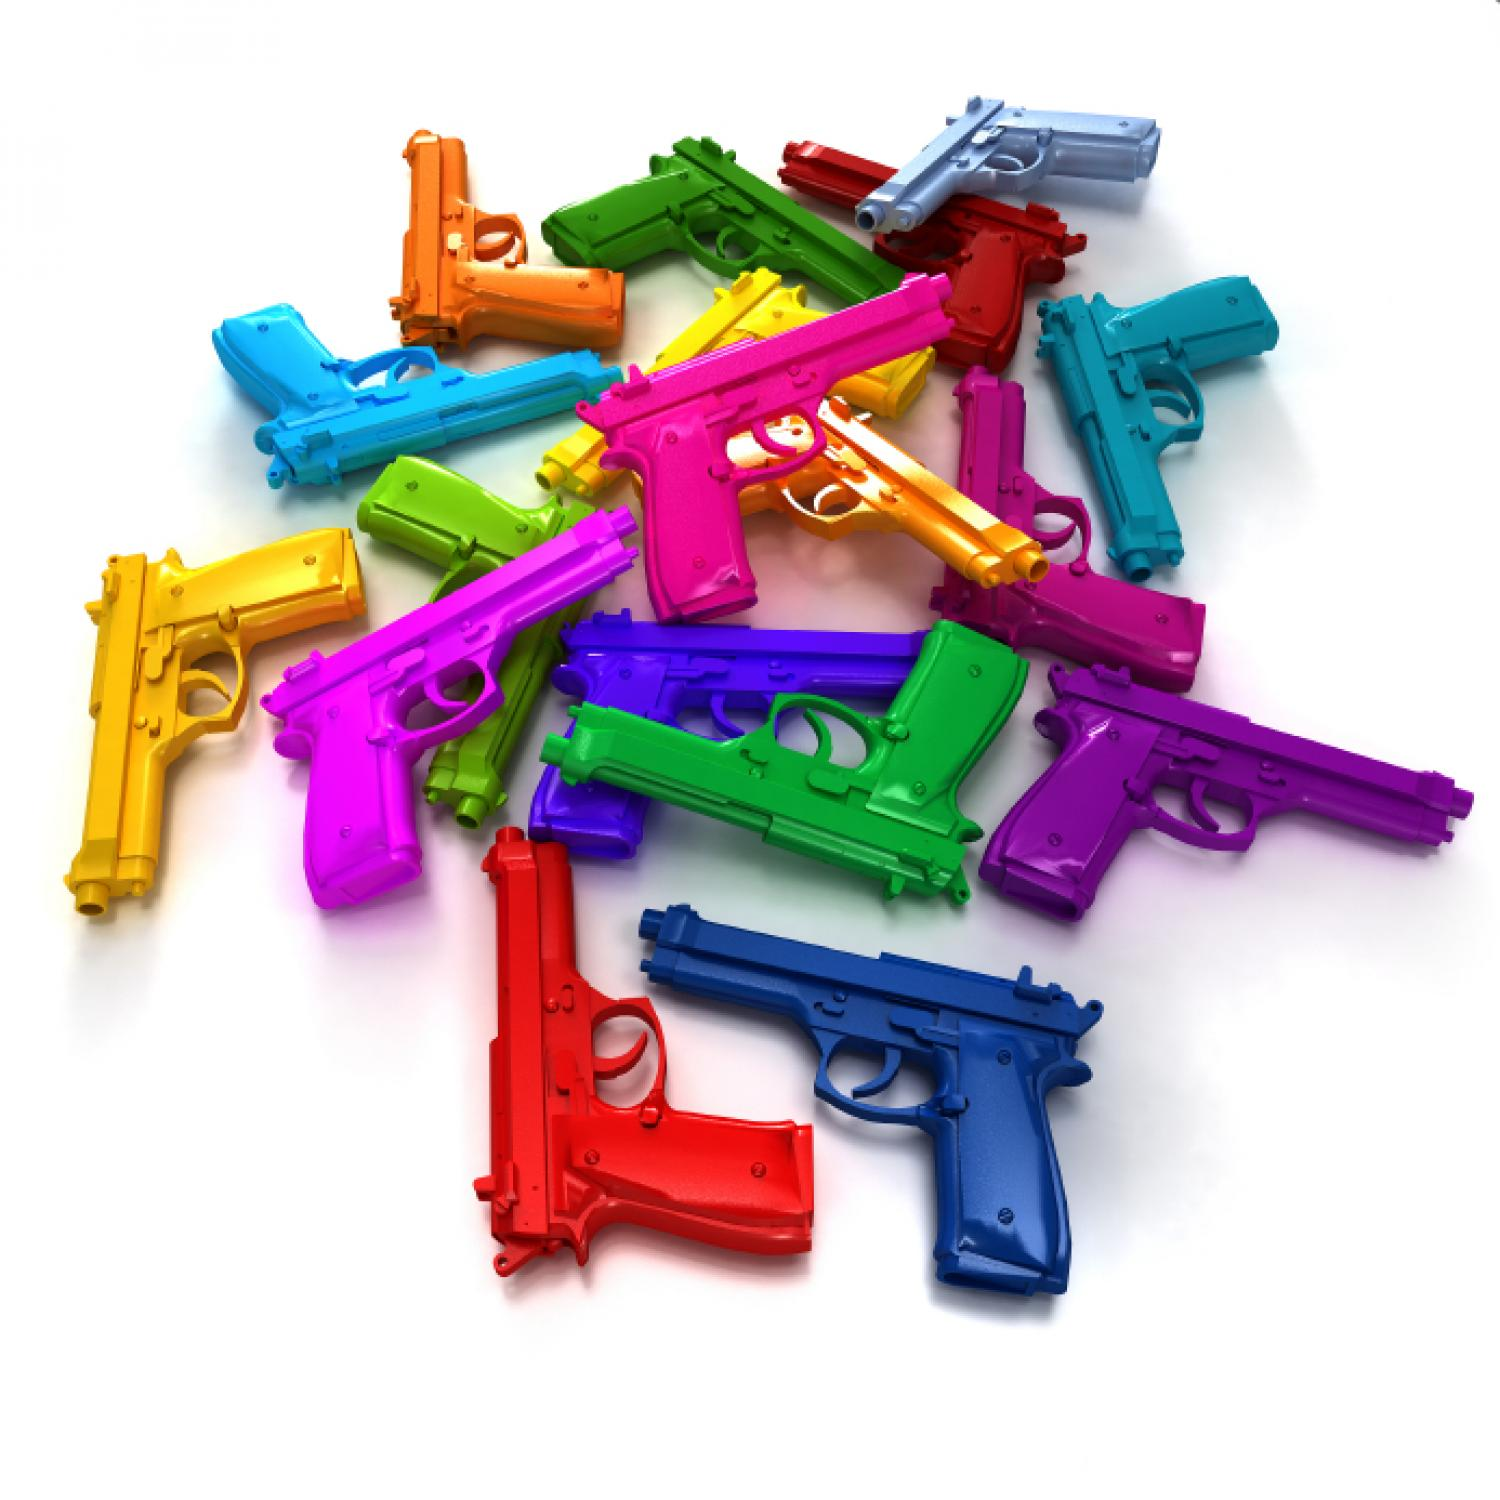 should guns be banned They're called ghost guns for good reason they can be made at home they have no serial number, require no background check and are fully legal due to loopholes in the laws.